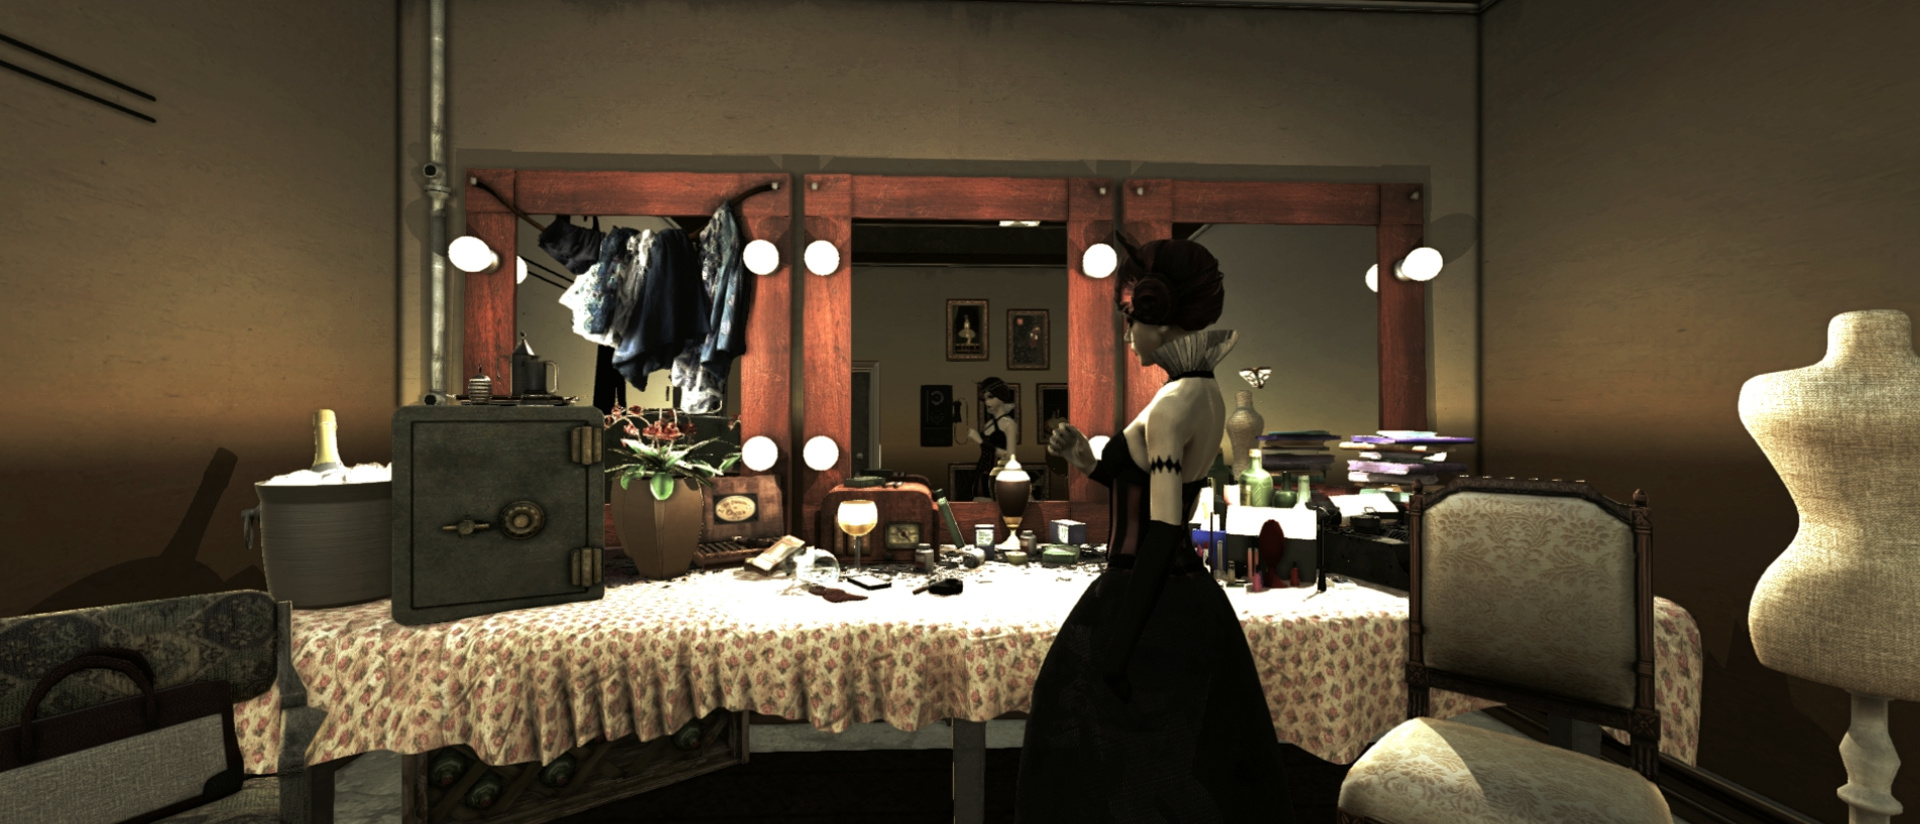 Dollhouse Ps4 Playstation 4 Game Profile News